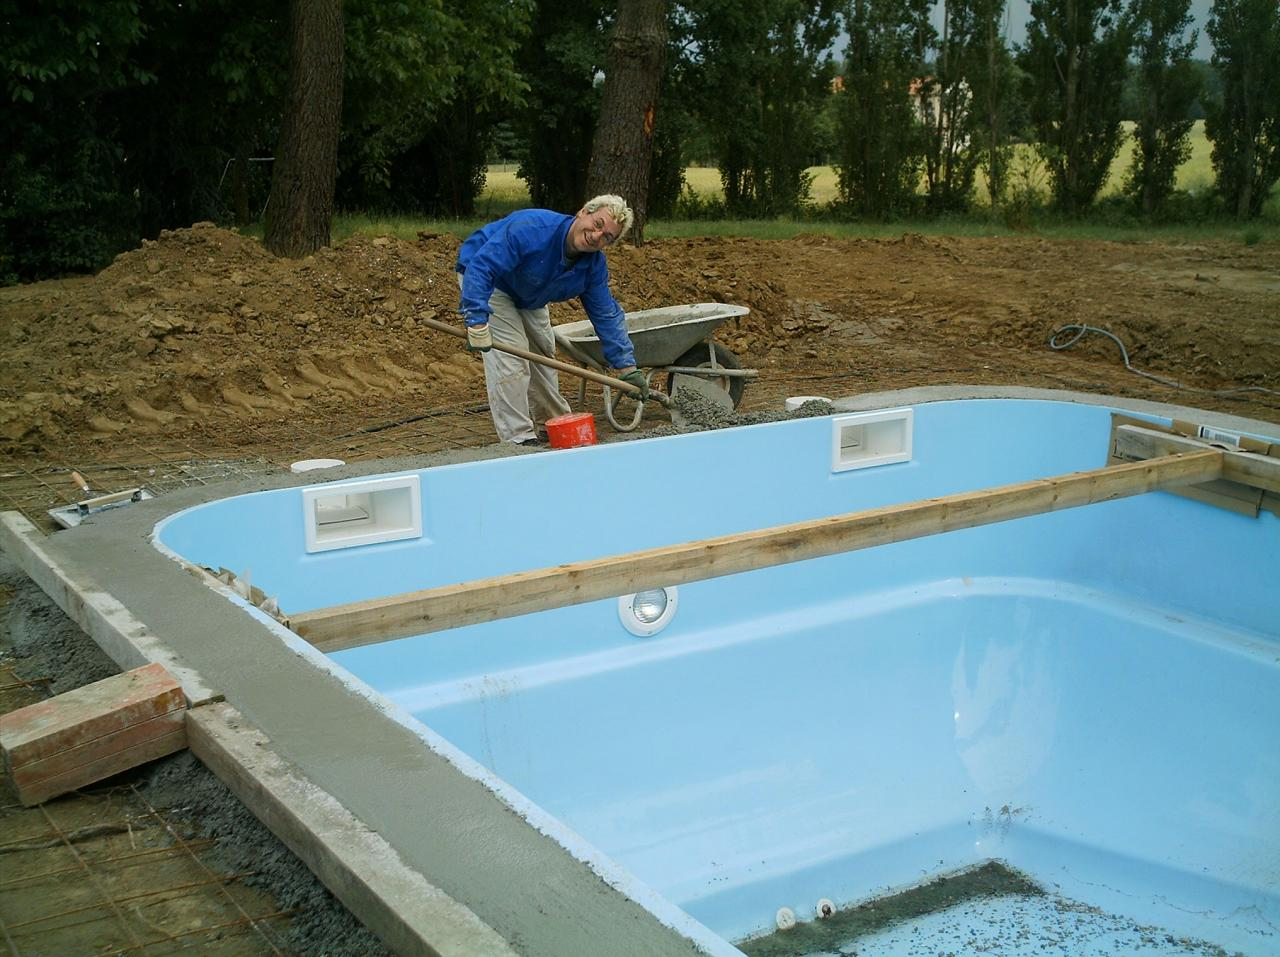 Travaux d une piscine coque comment s y prendre for Pose de margelle piscine